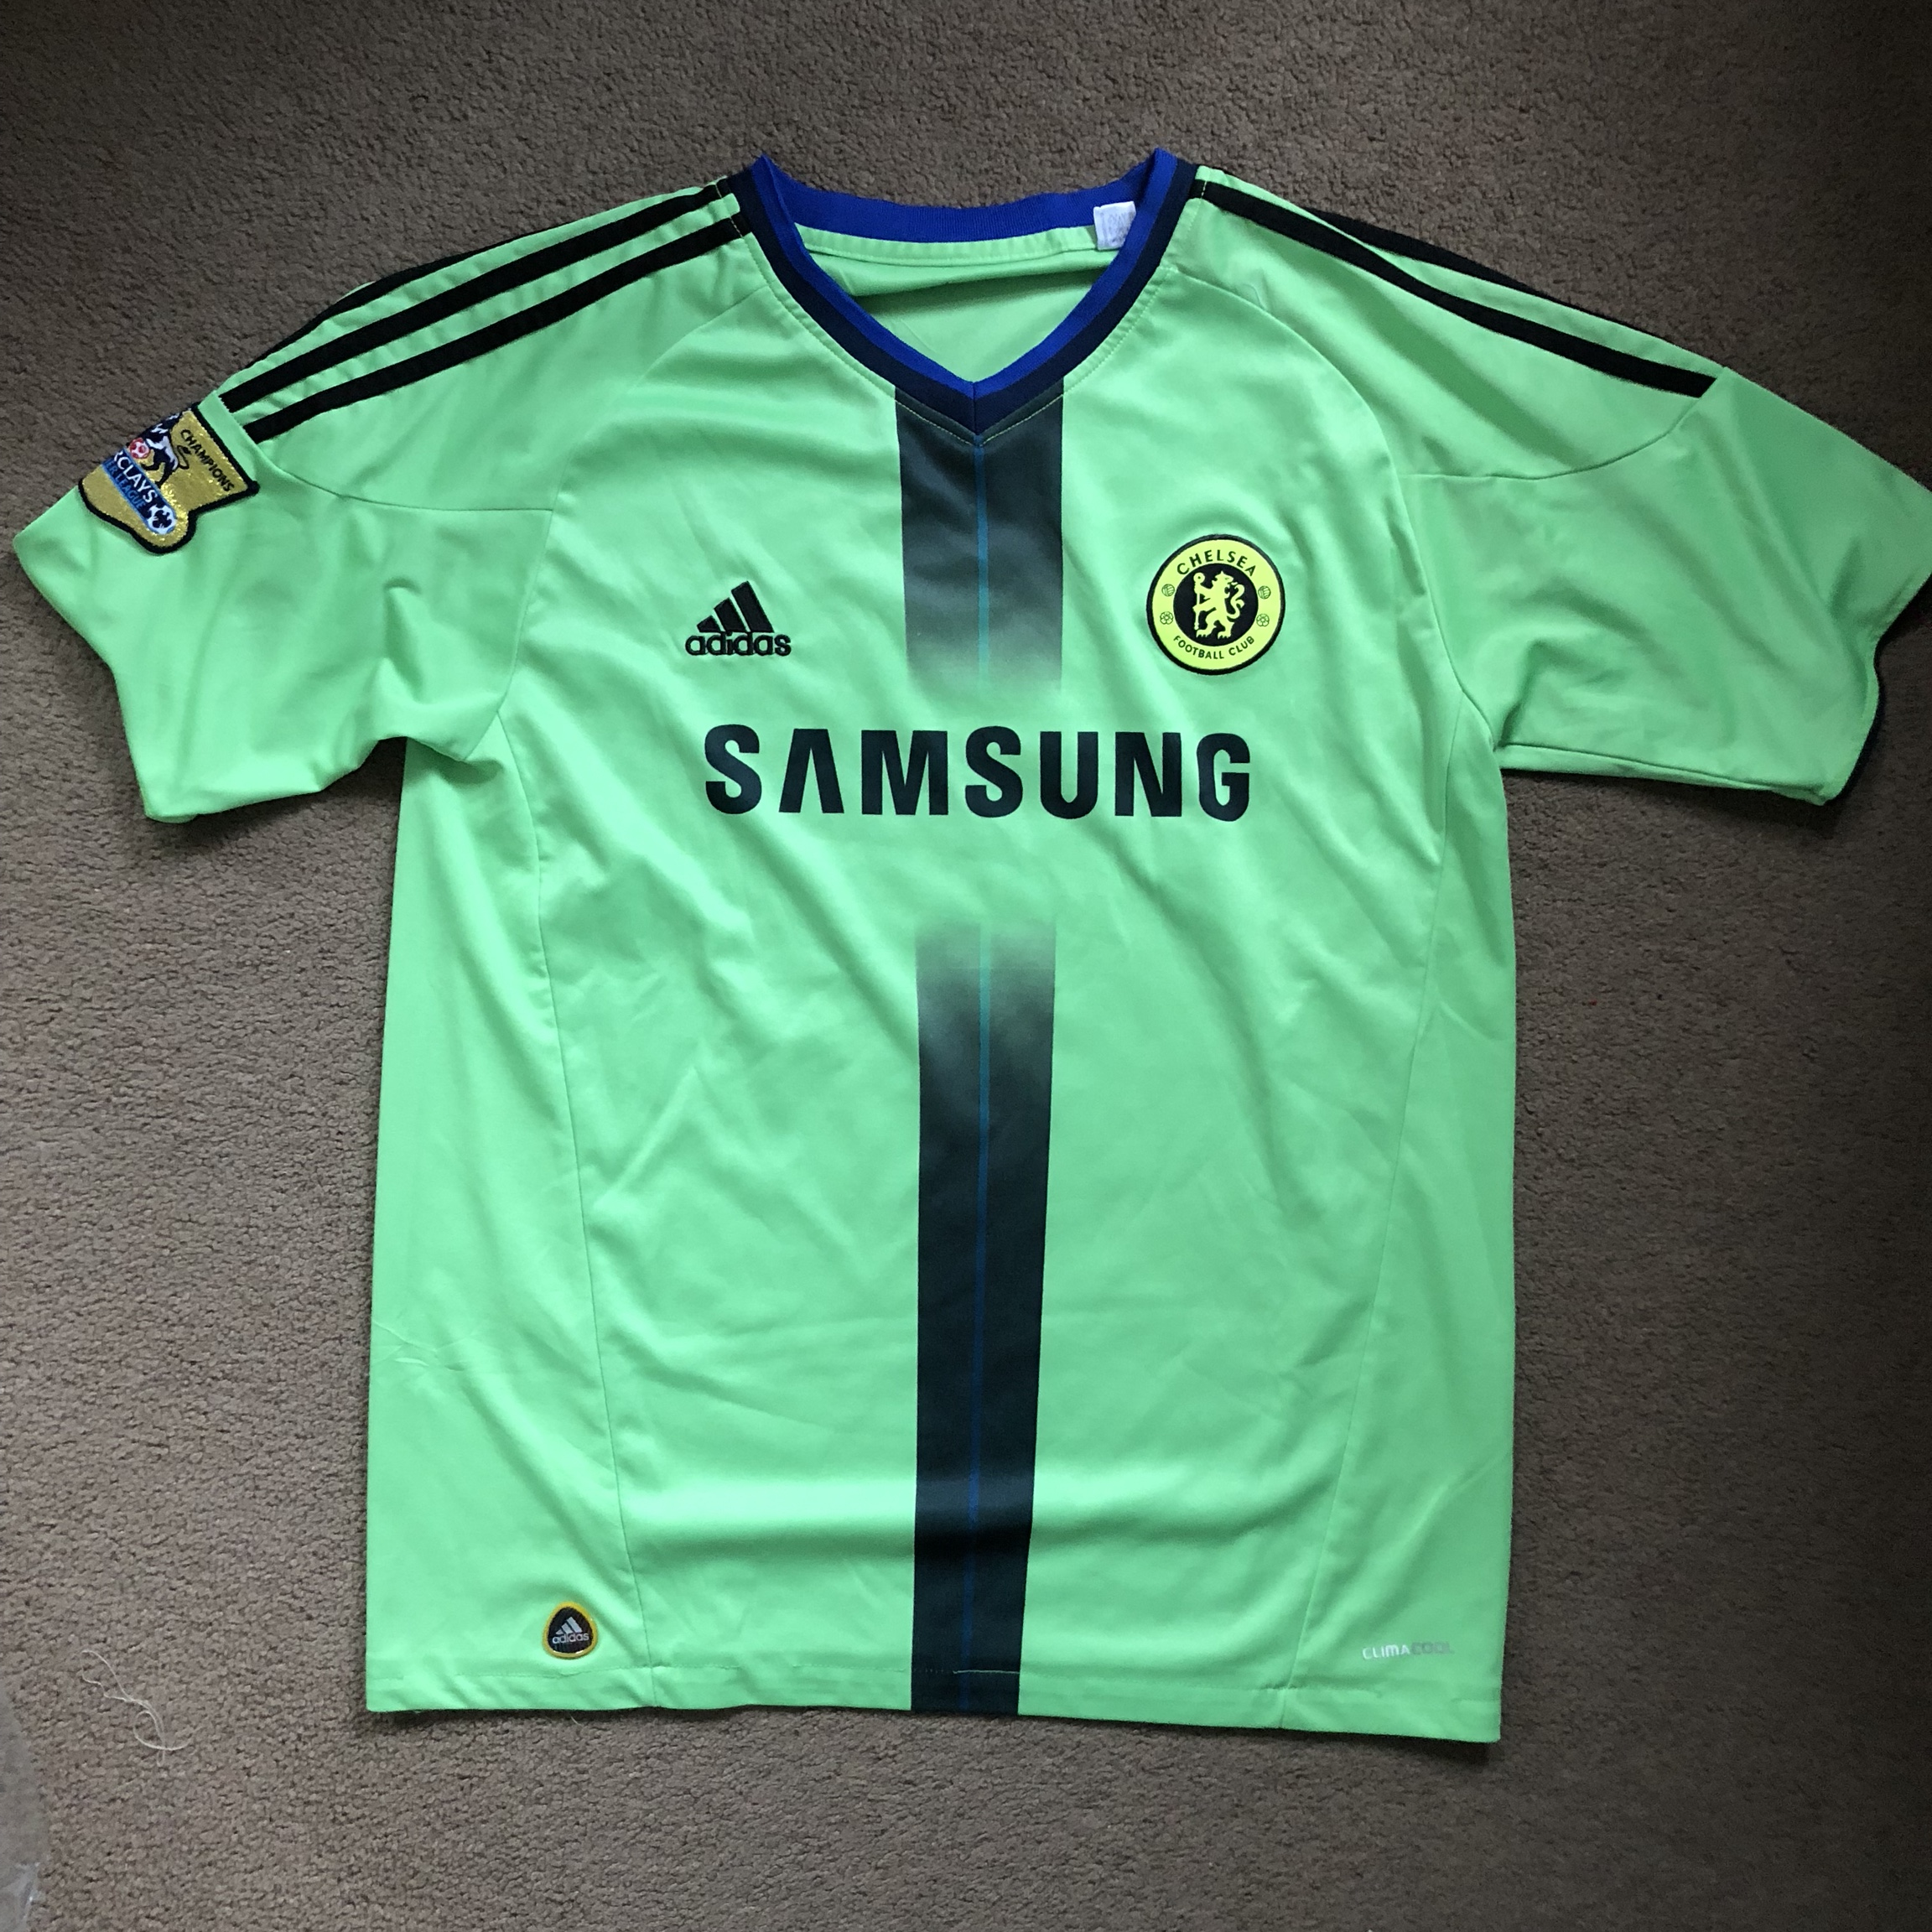 buy online 3c010 37a0c Chelsea Soccer Jersey ⚽️. Not sure if it's a custom... - Depop